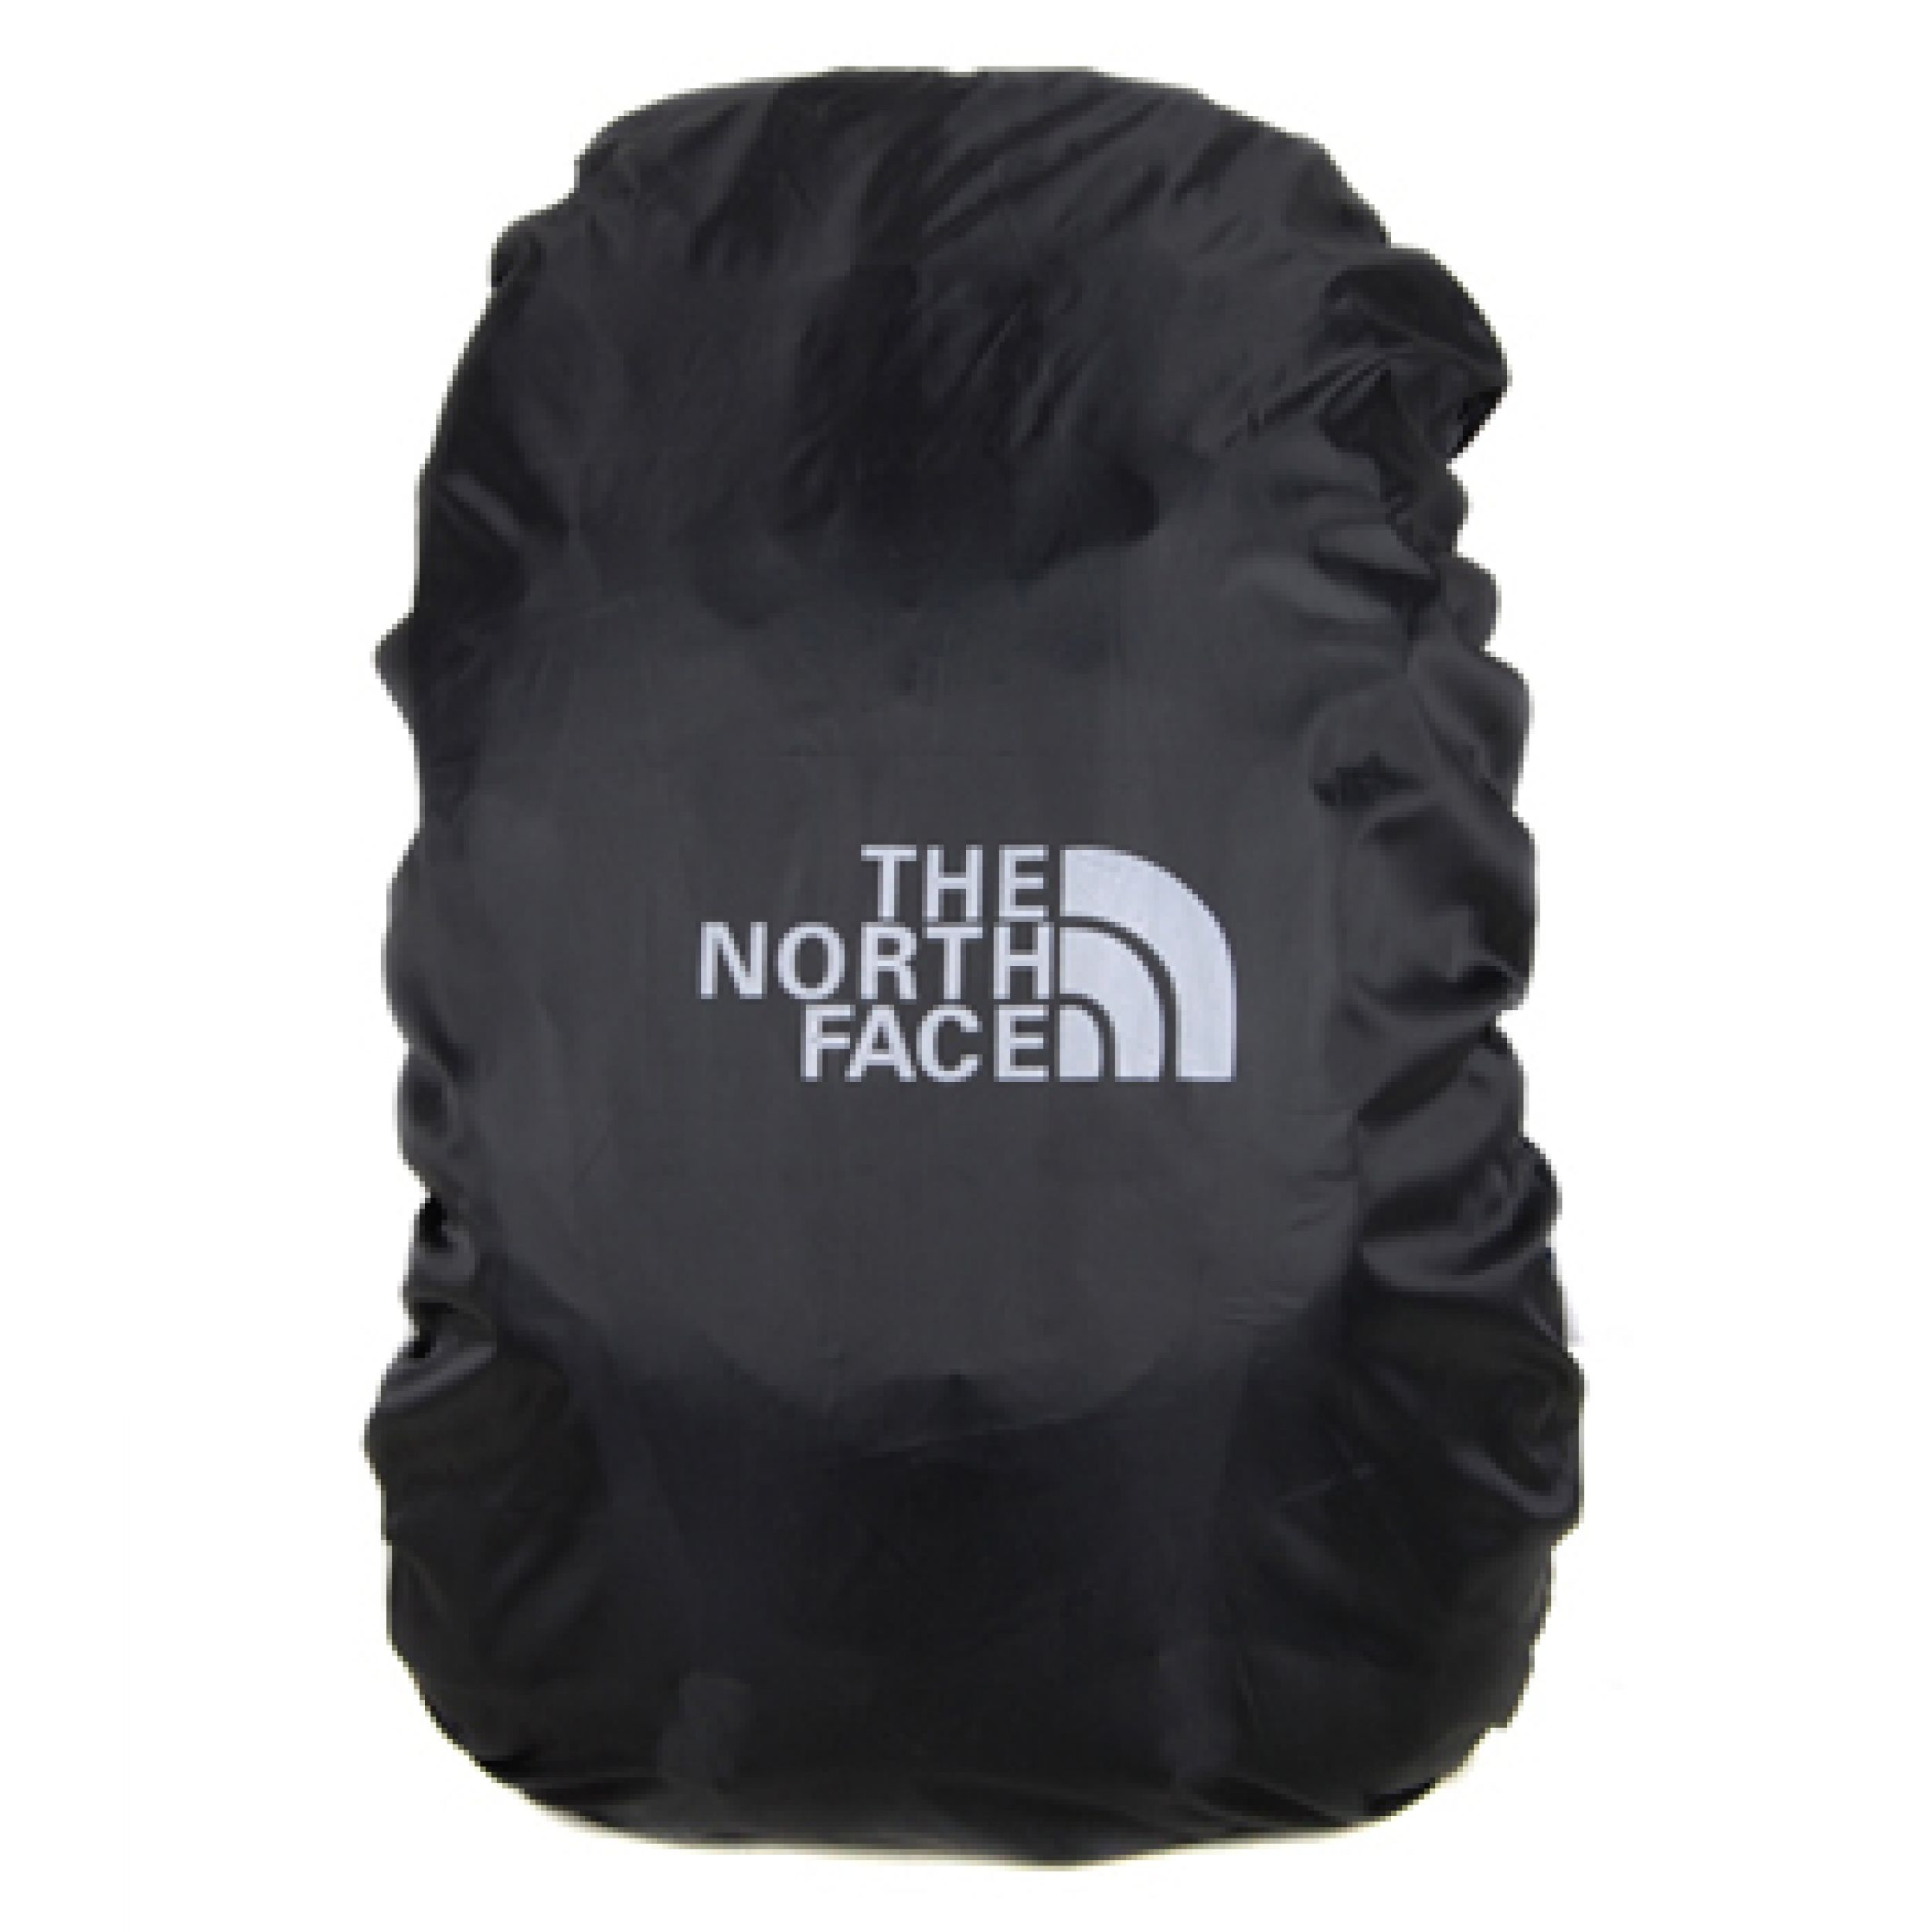 The_North_Face_Electron_40_Backpack__43_04_LRG.jpg